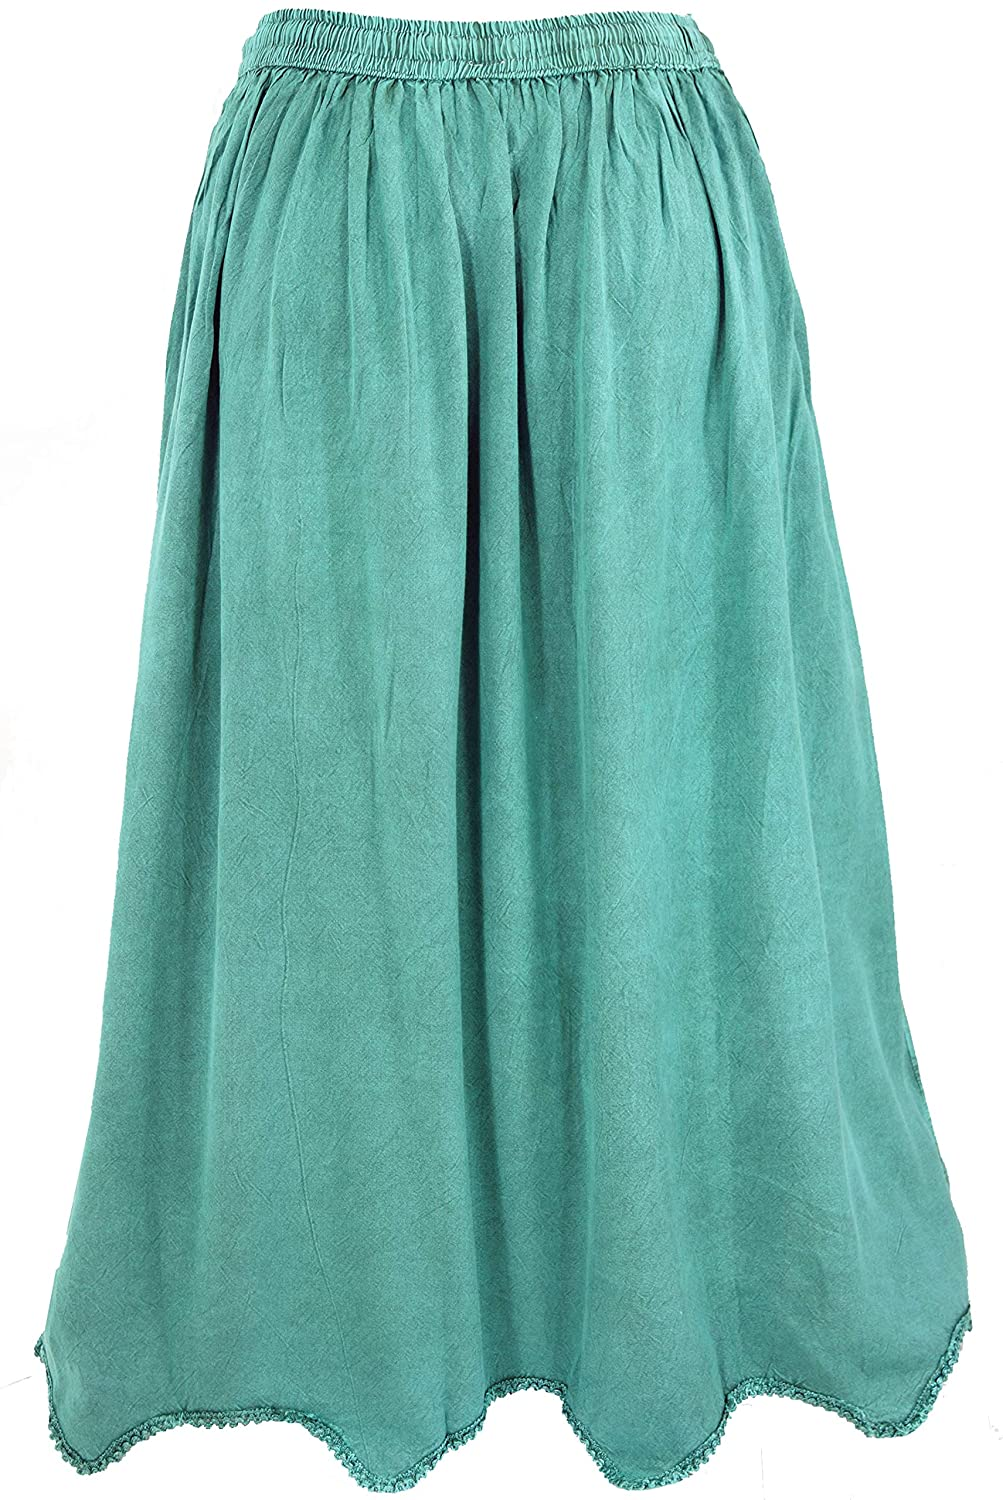 GURU-SHOP, Falda Hippie Boho Bordada, Falda Maxi India Aqua ...